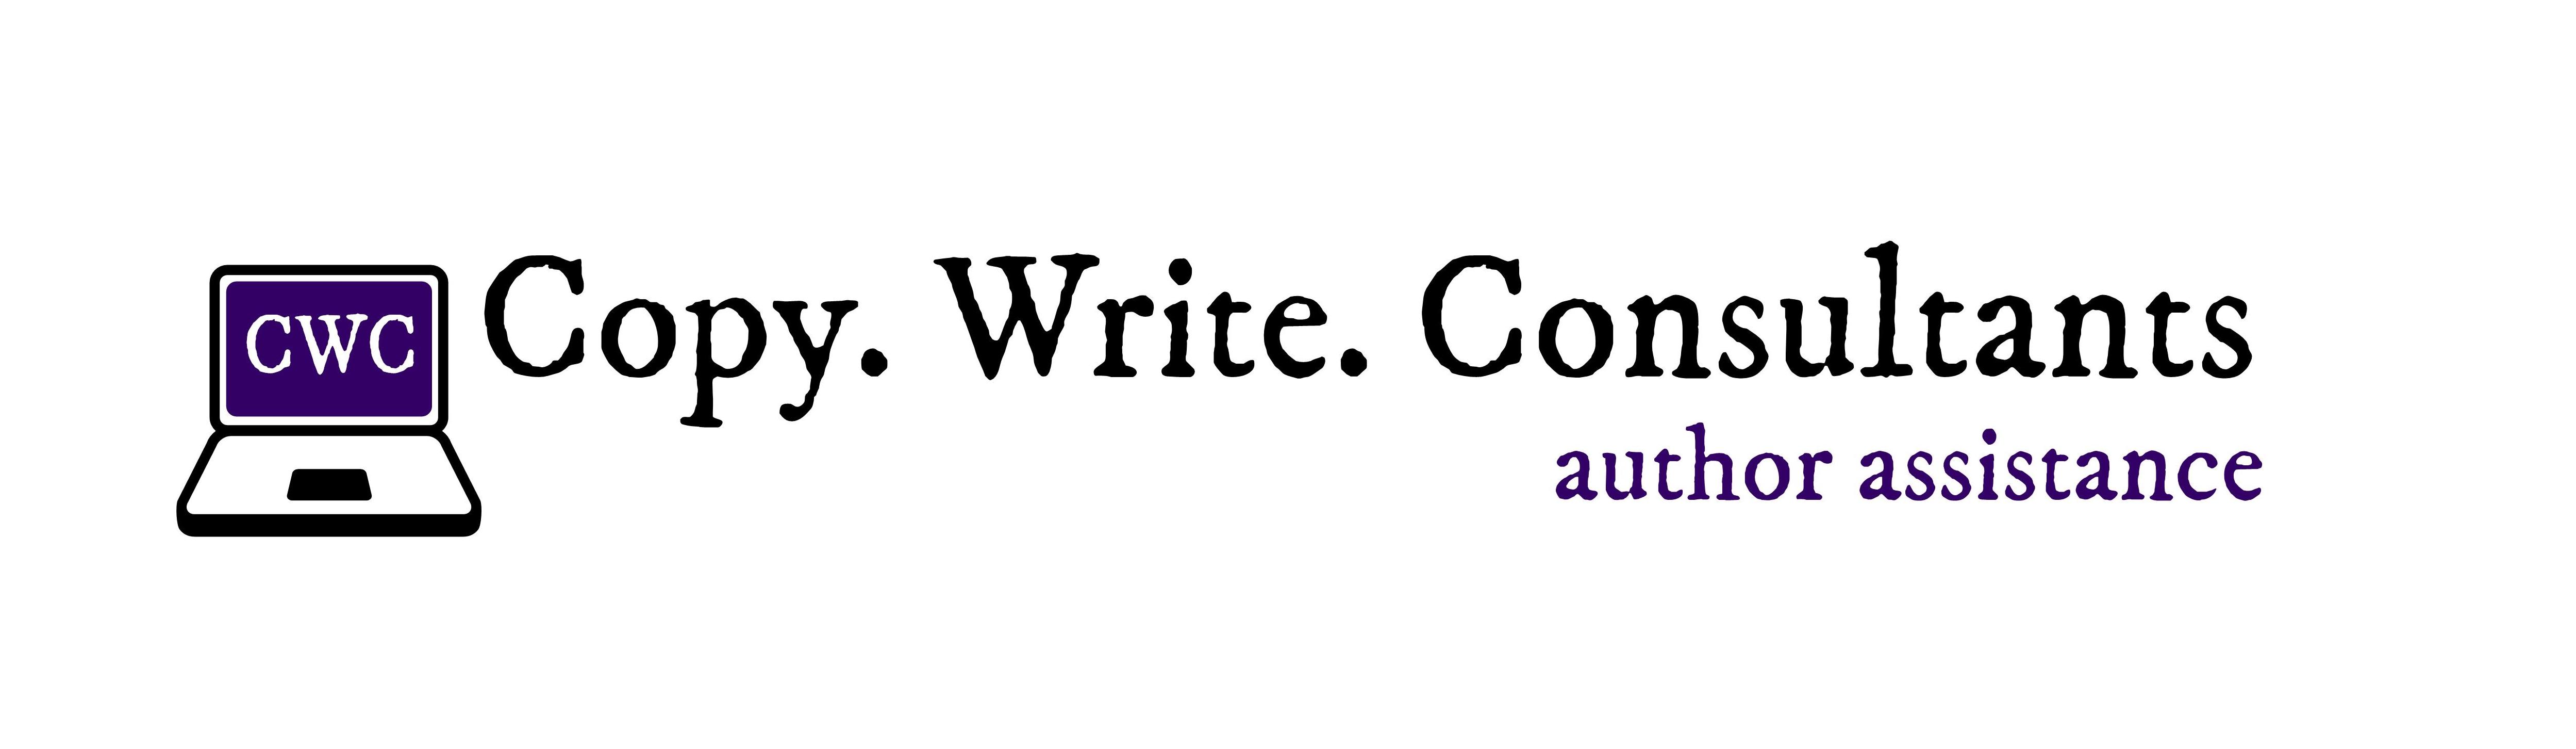 Copy. Write. Consultants Logo